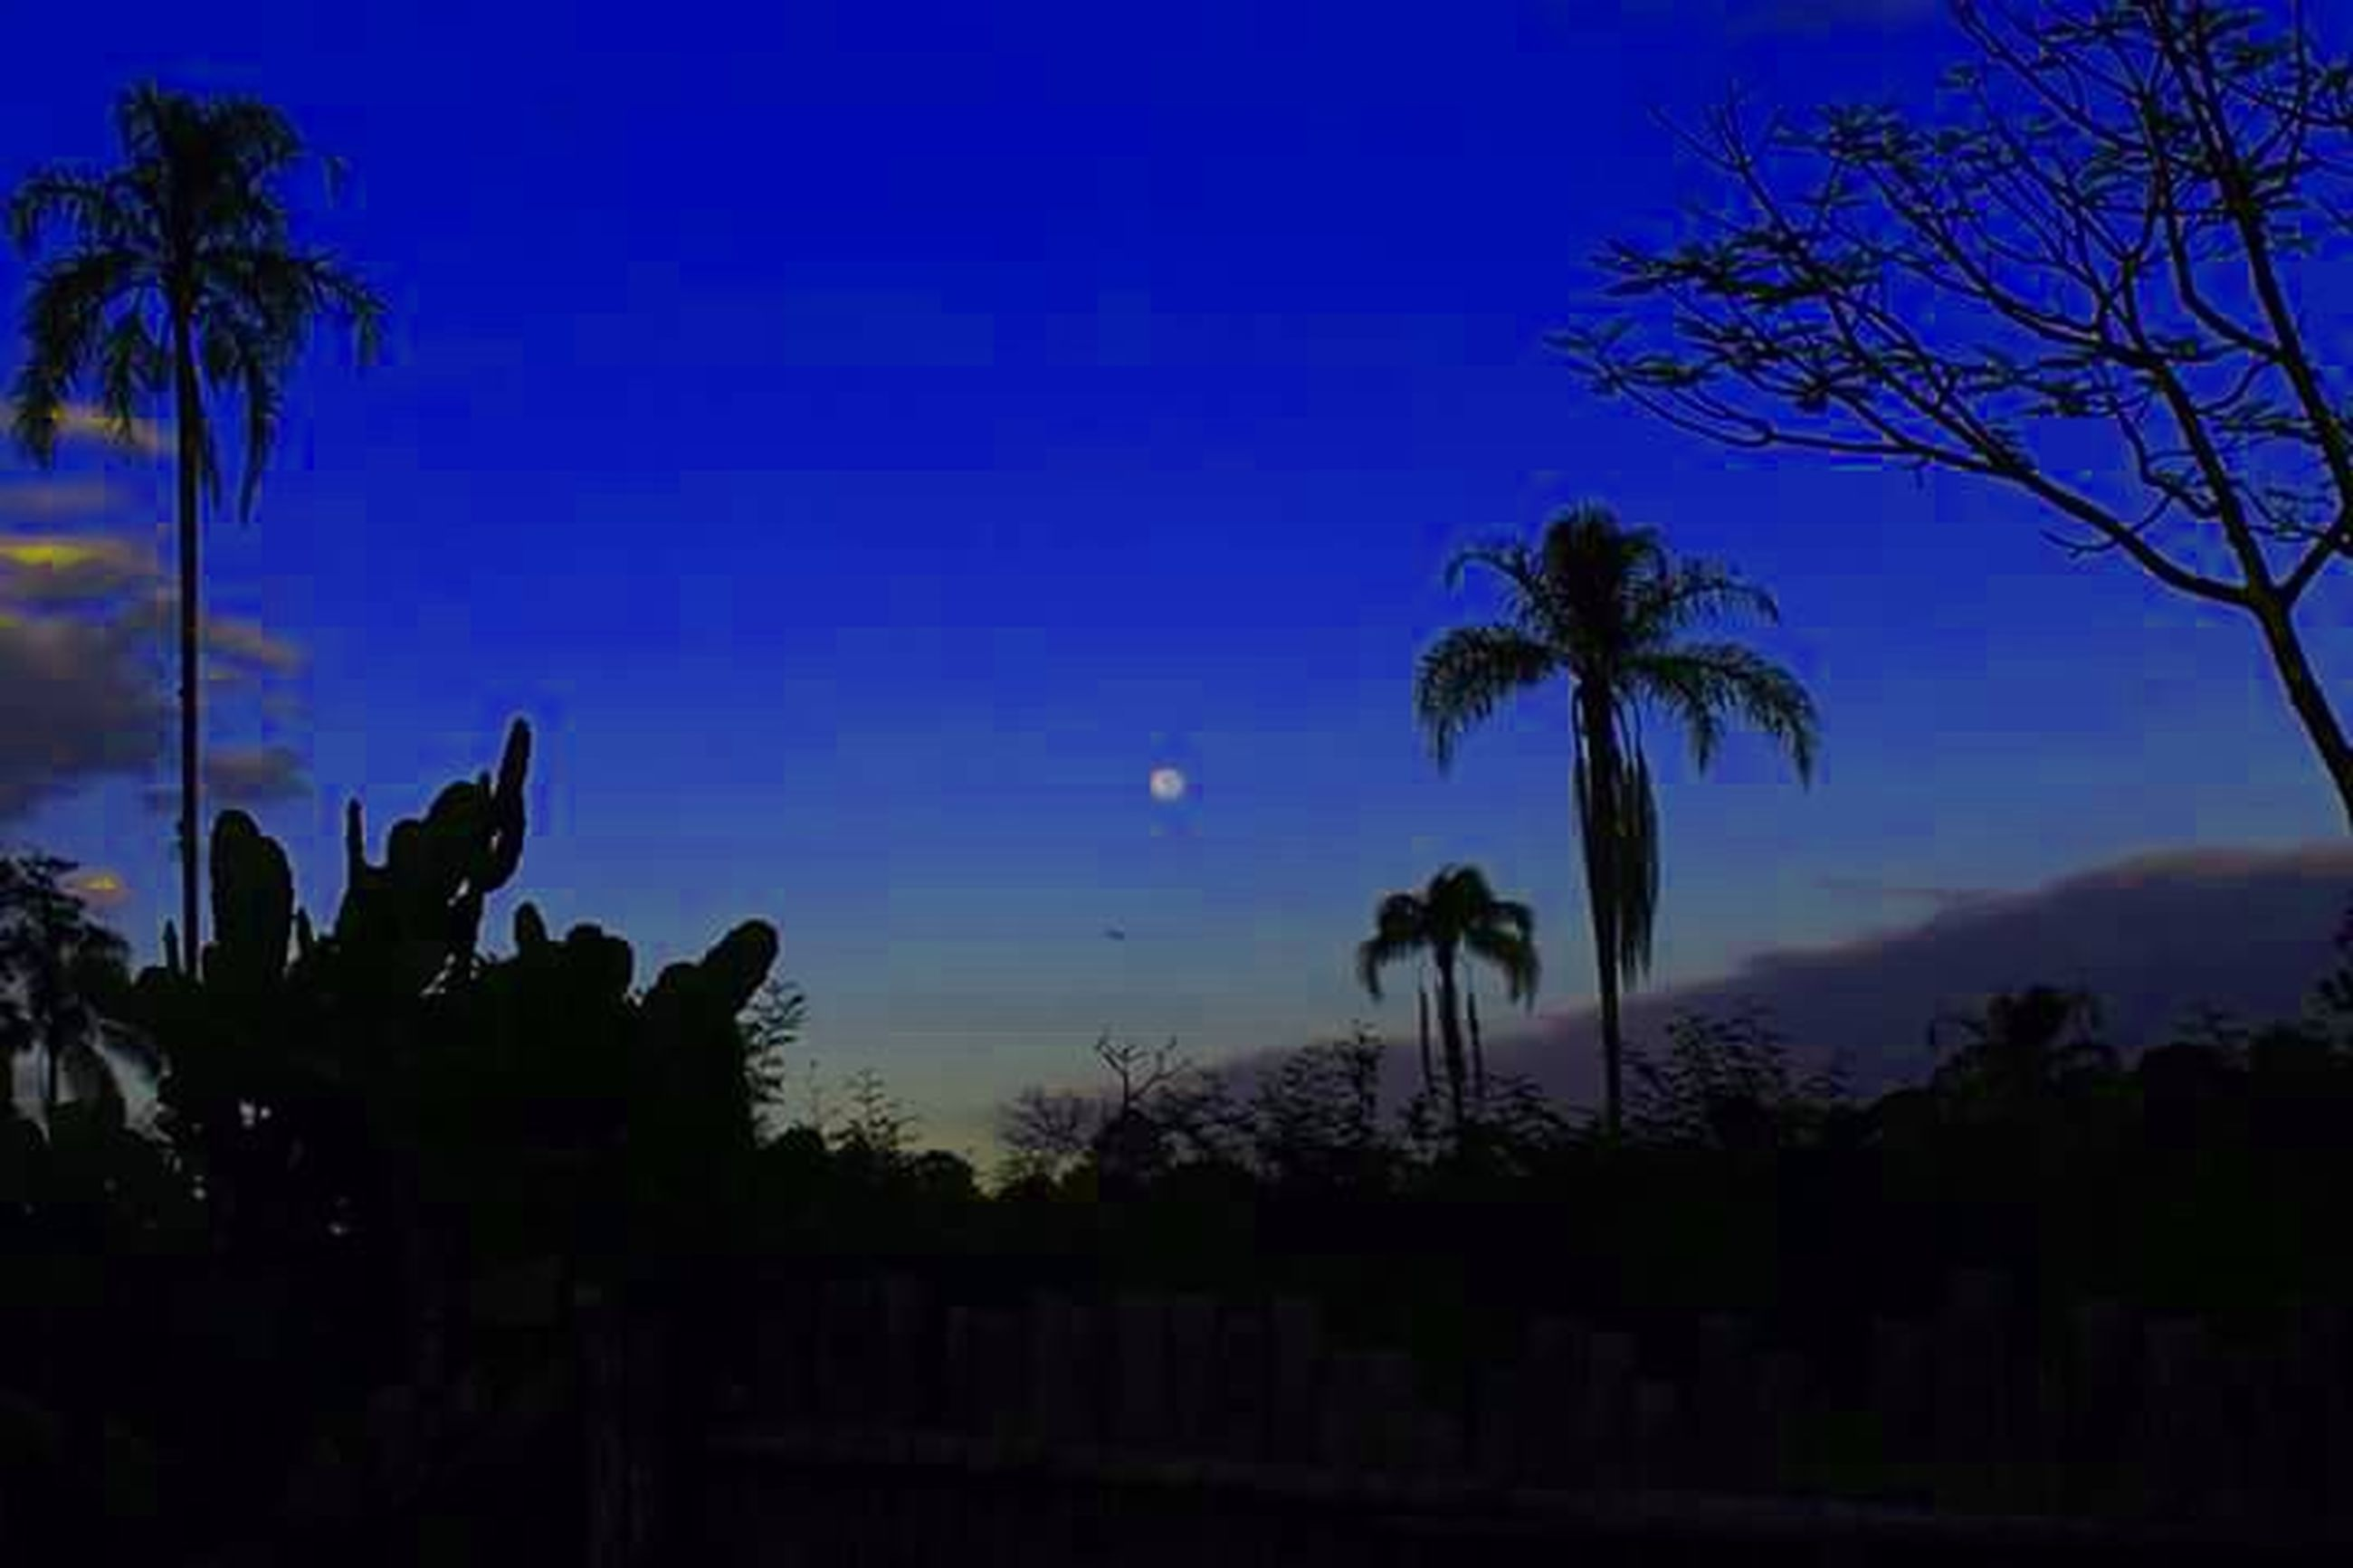 palm tree, silhouette, tree, tranquility, tranquil scene, sky, beauty in nature, scenics, sunset, nature, blue, growth, dusk, outline, low angle view, idyllic, tree trunk, outdoors, no people, landscape